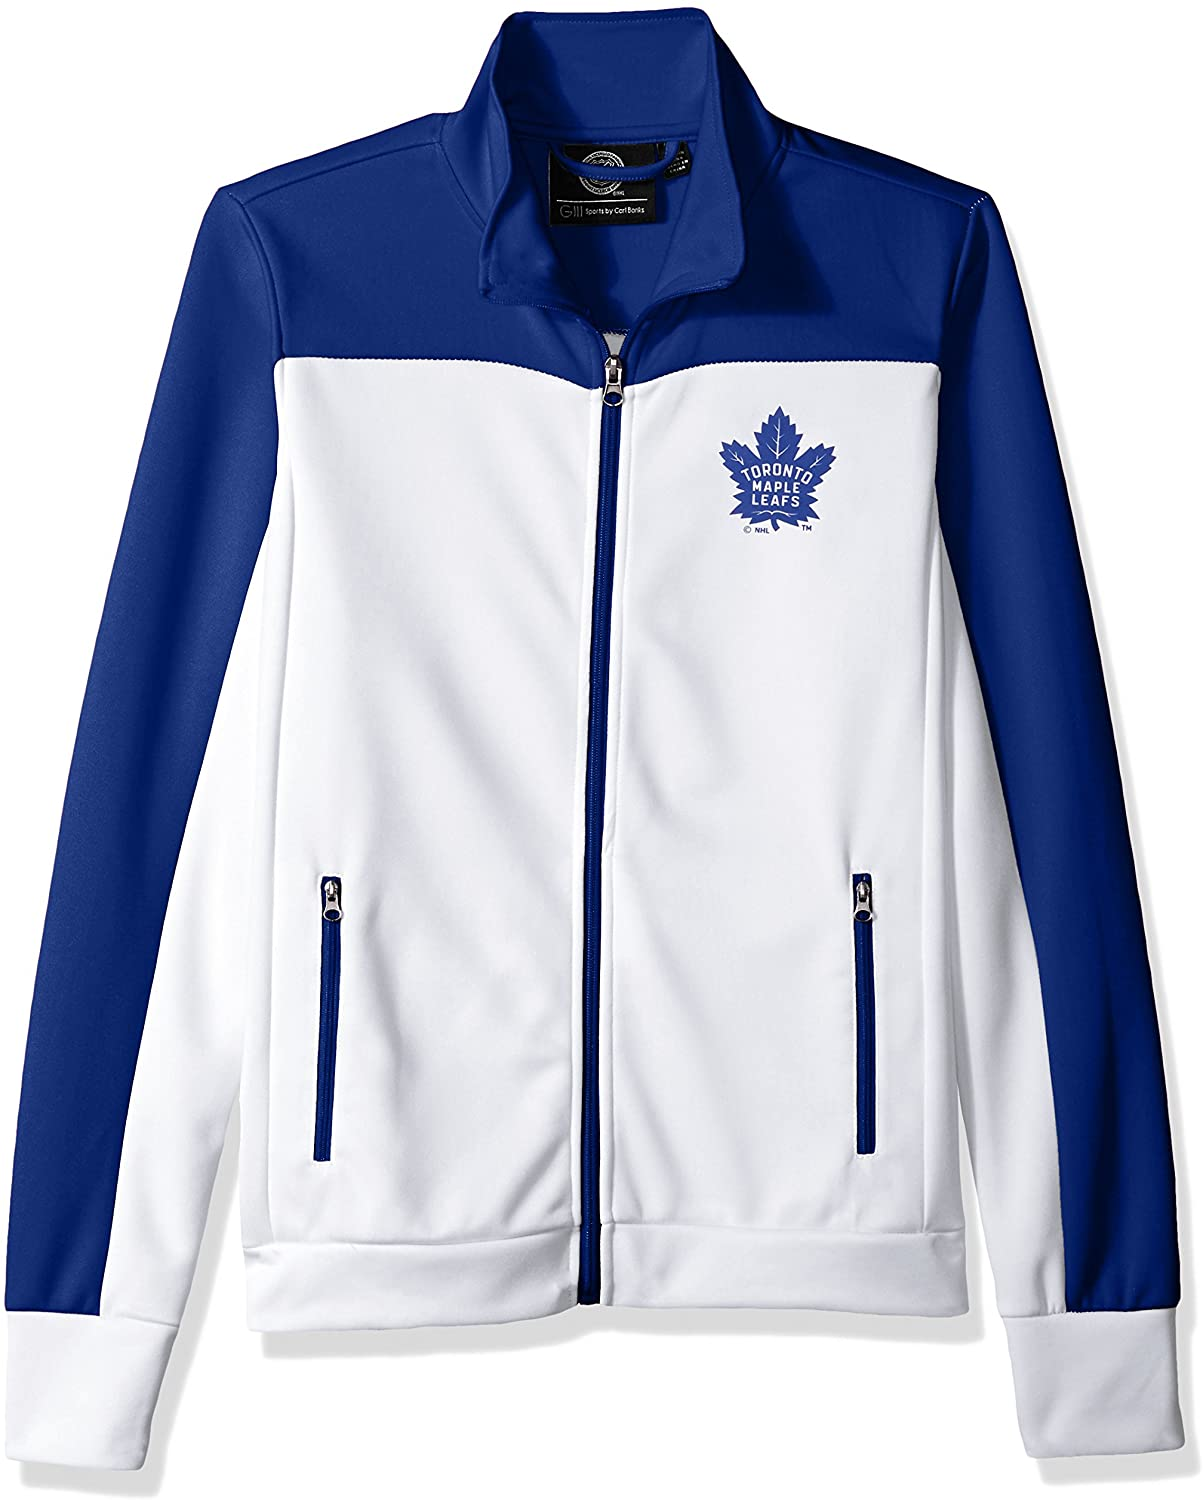 GIII For Her Women's Play Maker Track Jacket